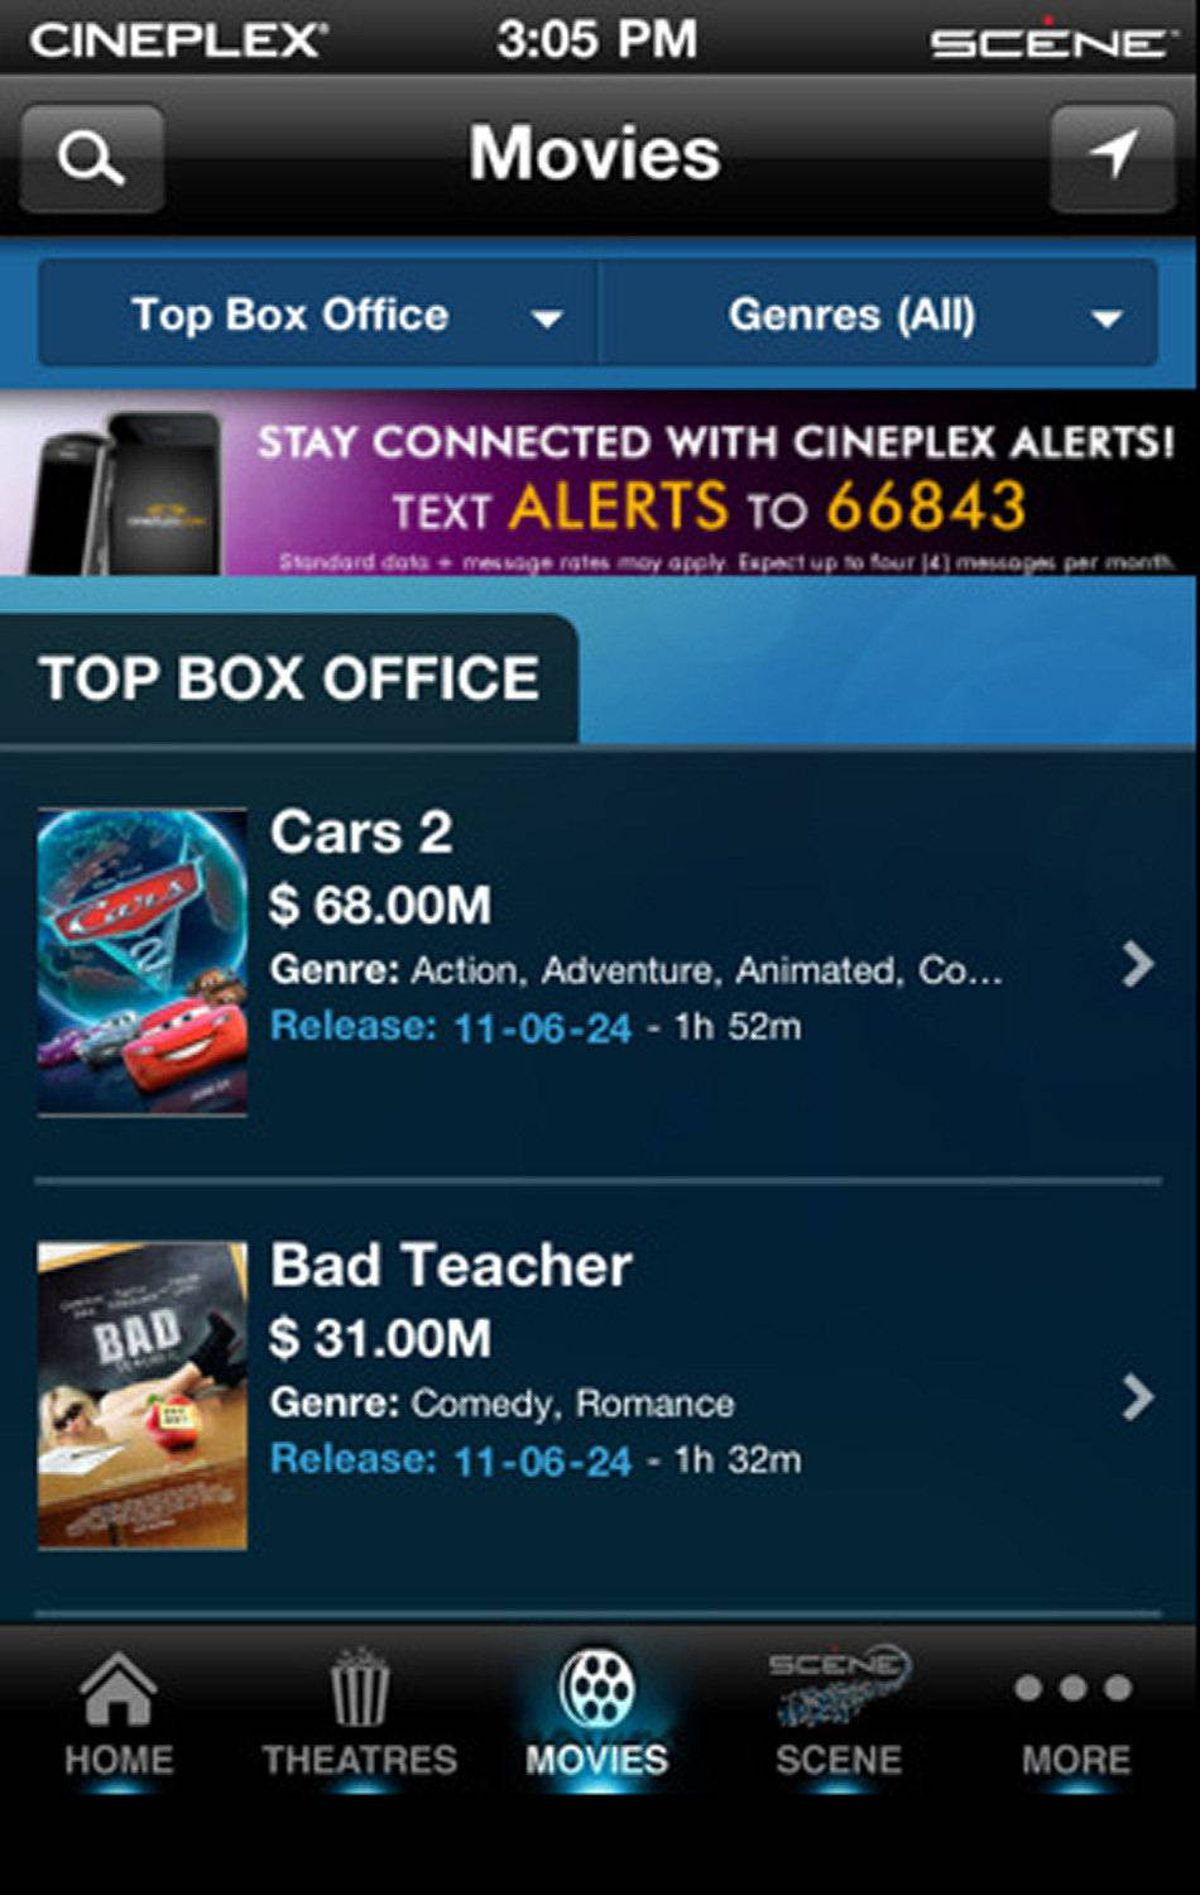 Cineplex Feel like catching a movie? The free Cineplex app has all the information you need. Search by theatre, movie, or actor to get movie showtimes for every Cineplex theatre in Canada. Cineplex helps you find the nearest theatre, with maps, phone numbers, and admission prices. If you're not sure what to watch, you can view movie trailers and read the latest entertainment news right in the app. When you're ready, buy tickets. This one has everything but the popcorn. (free, cineplex.com)